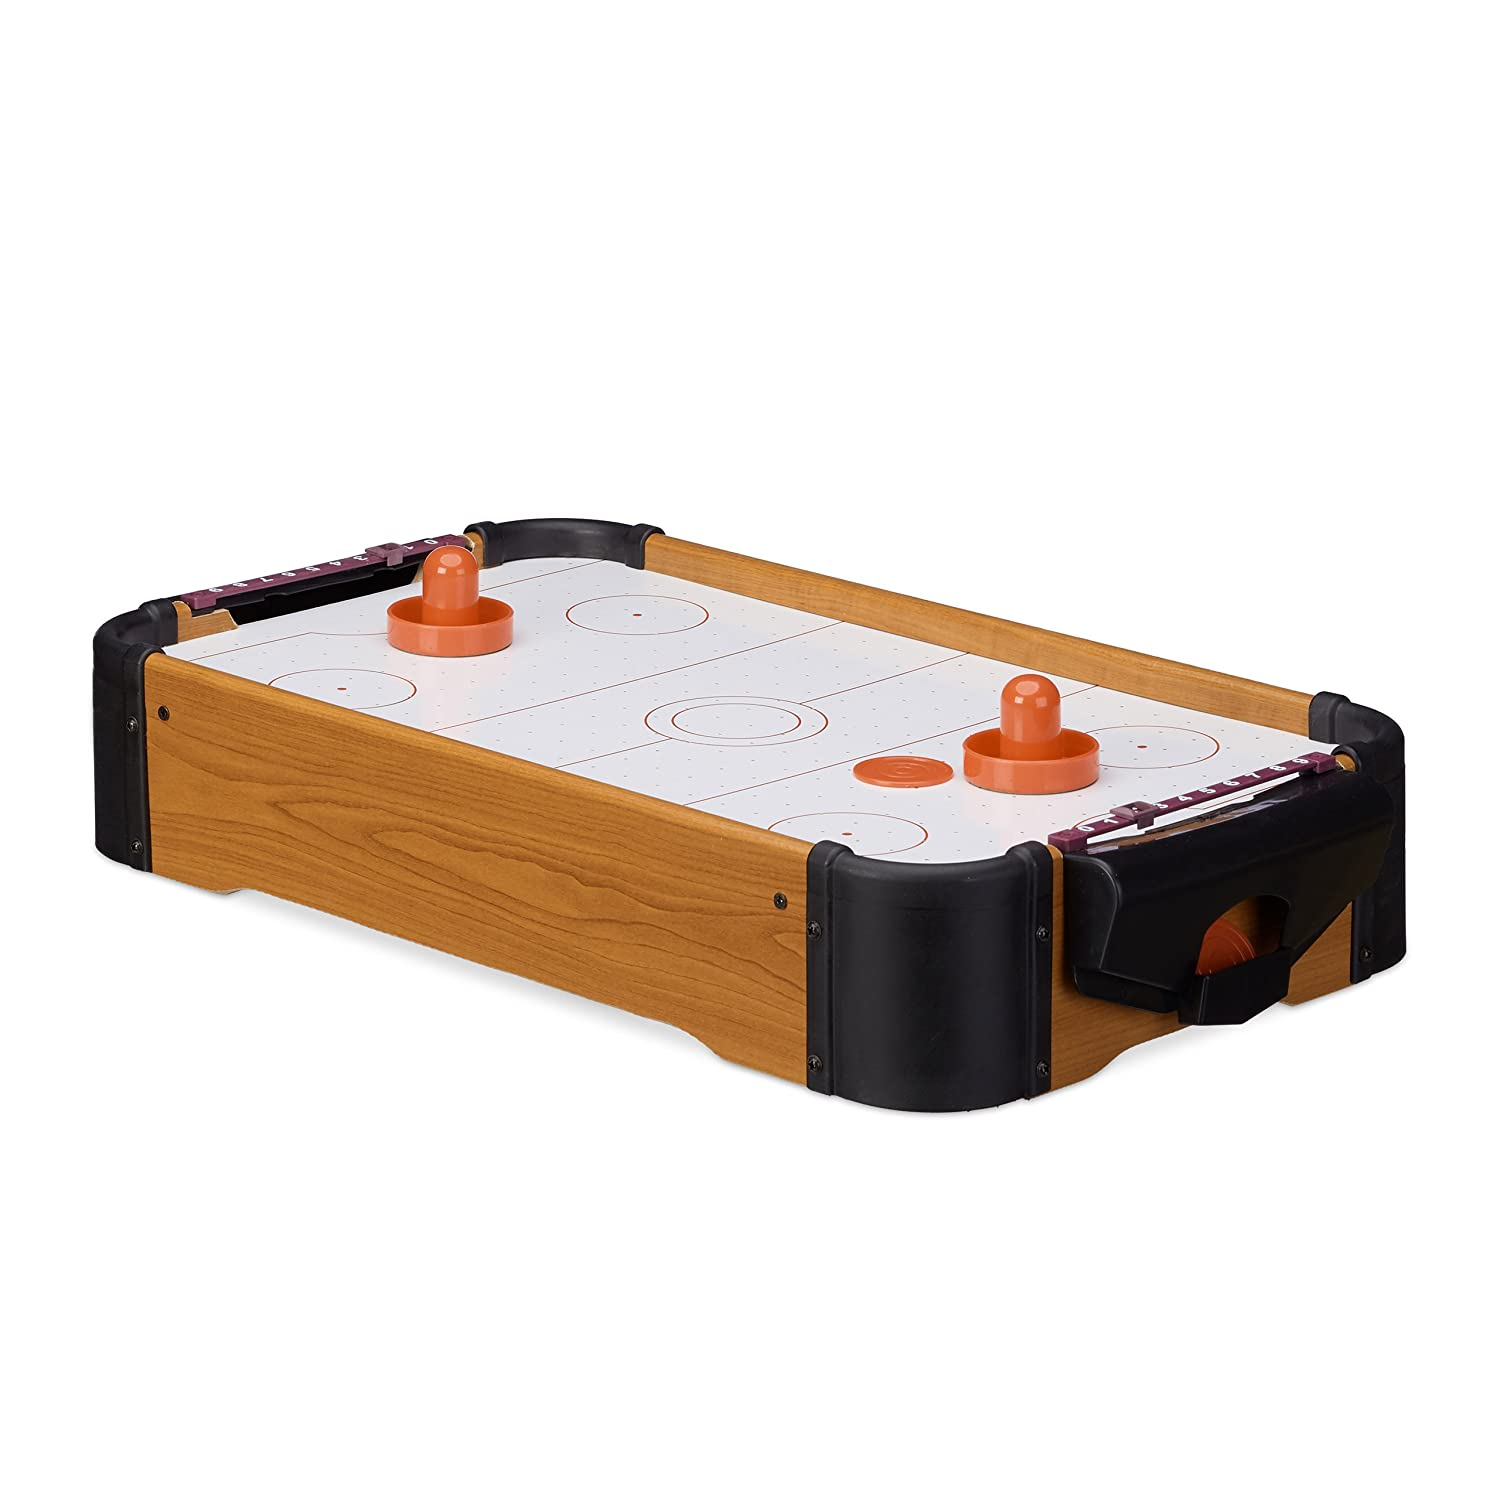 Relaxdays Air Hockey Tabletop Game, With Blower, Pucks and Pushers, Portable, Accessories, HxWxD: 10 x 31 x 56 cm, Brown 10022514